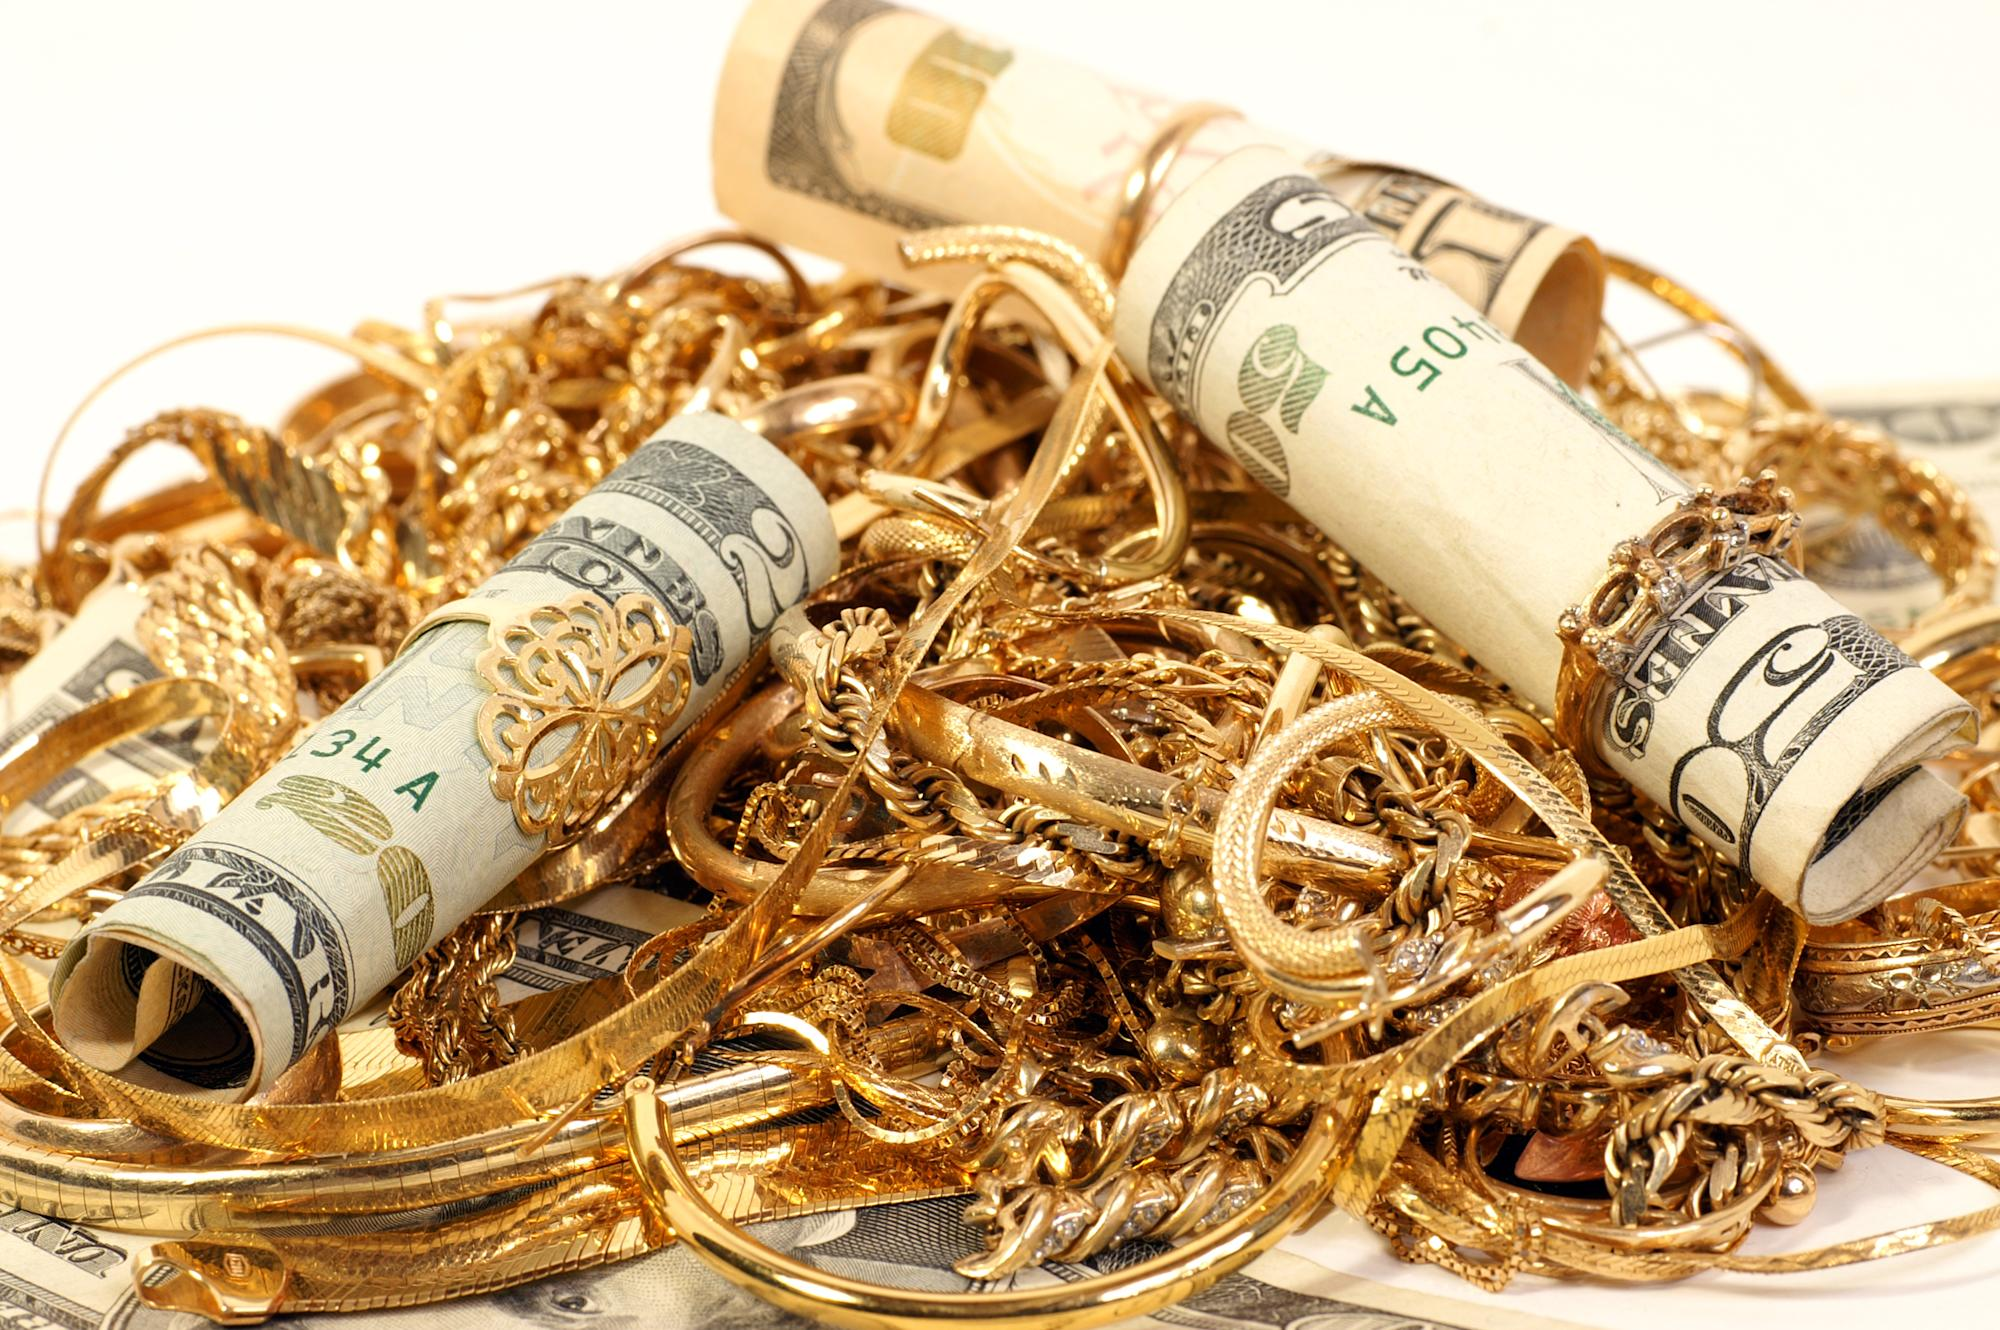 Have jewellery in locker? Buy insurance as bank is not liable for any loss